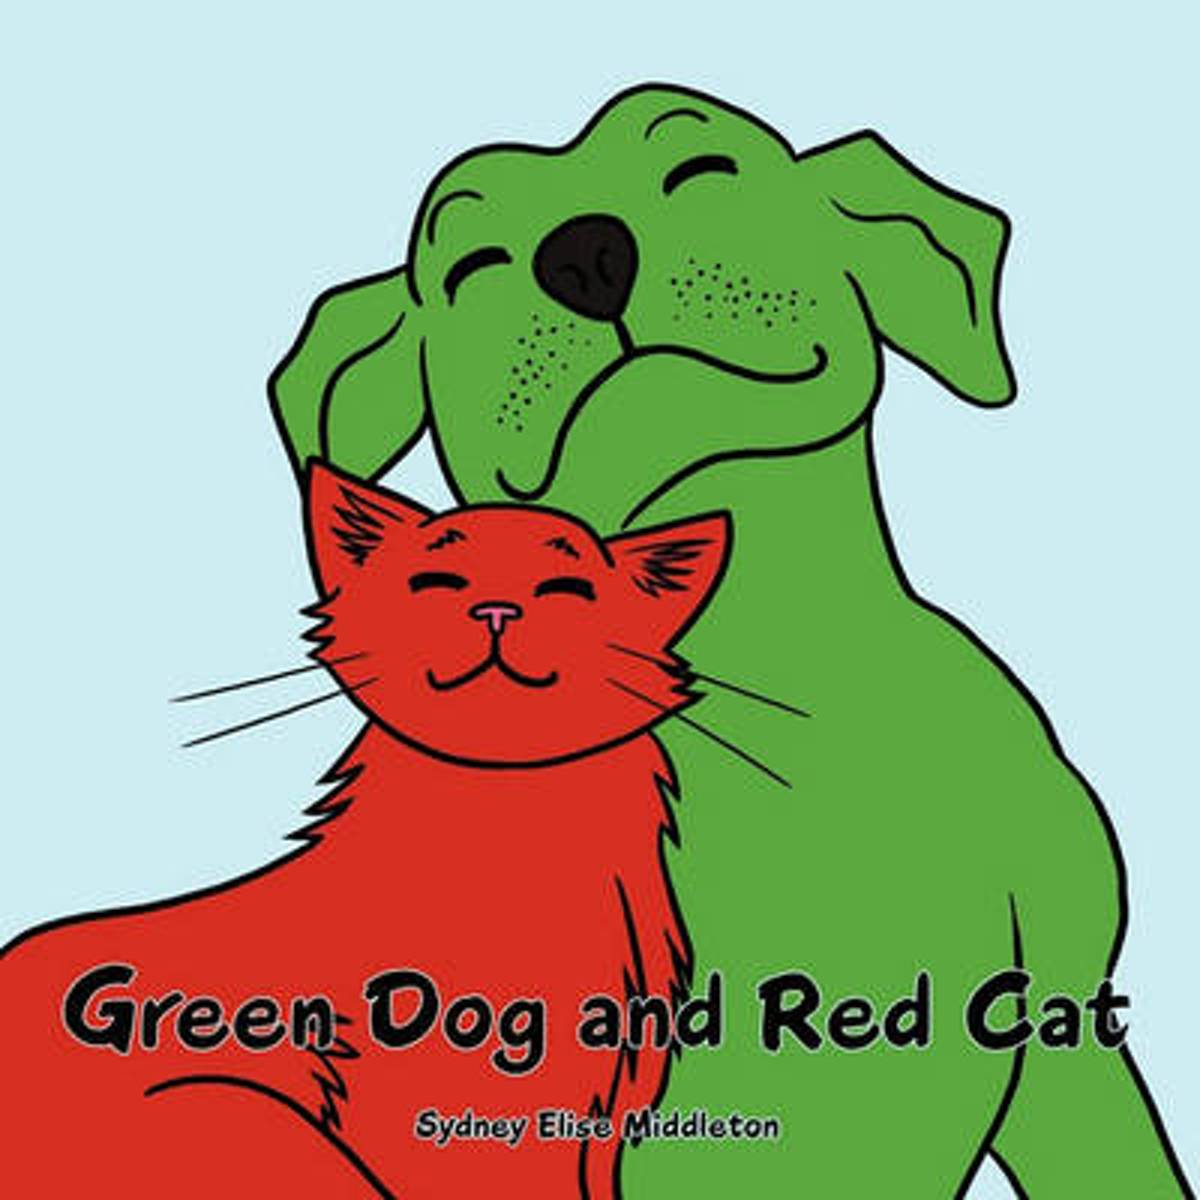 Green Dog and Red Cat